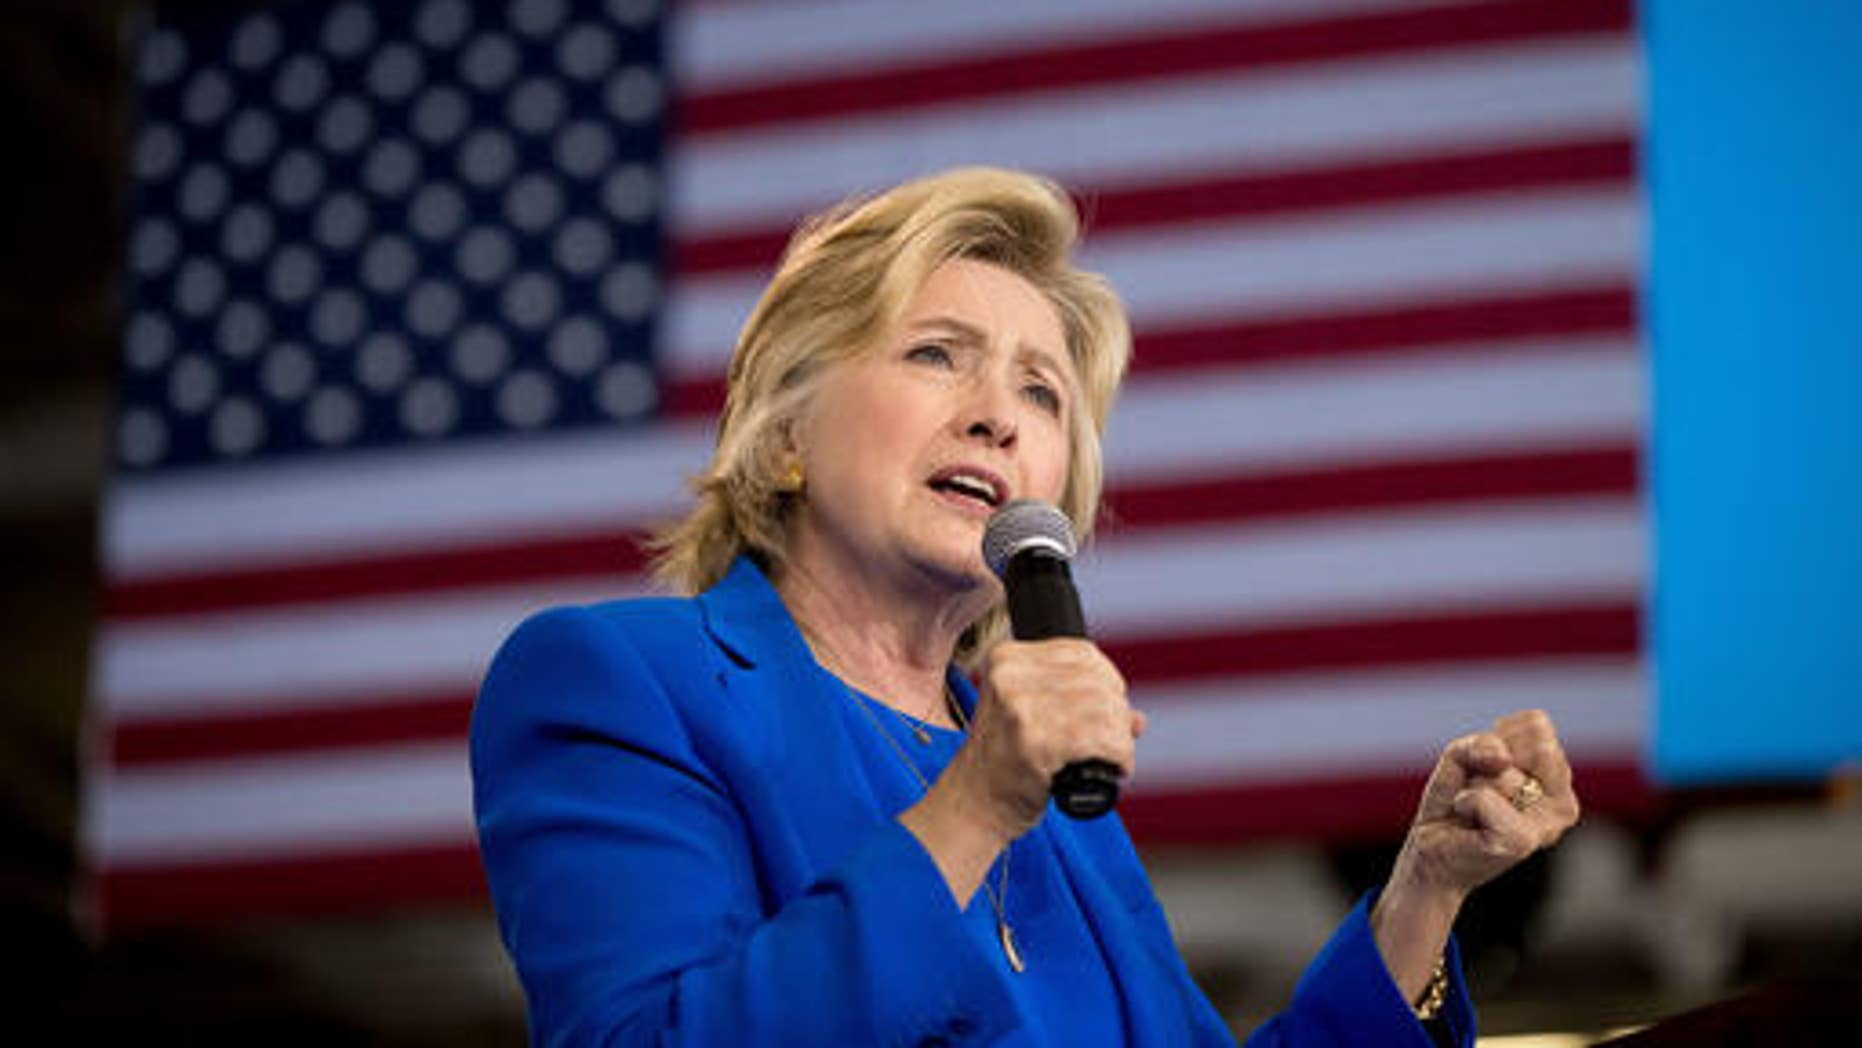 Democratic presidential candidate Hillary Clinton speaks at a rally at Johnson C. Smith University in Charlotte, N.C., Thursday, Sept. 8, 2016.